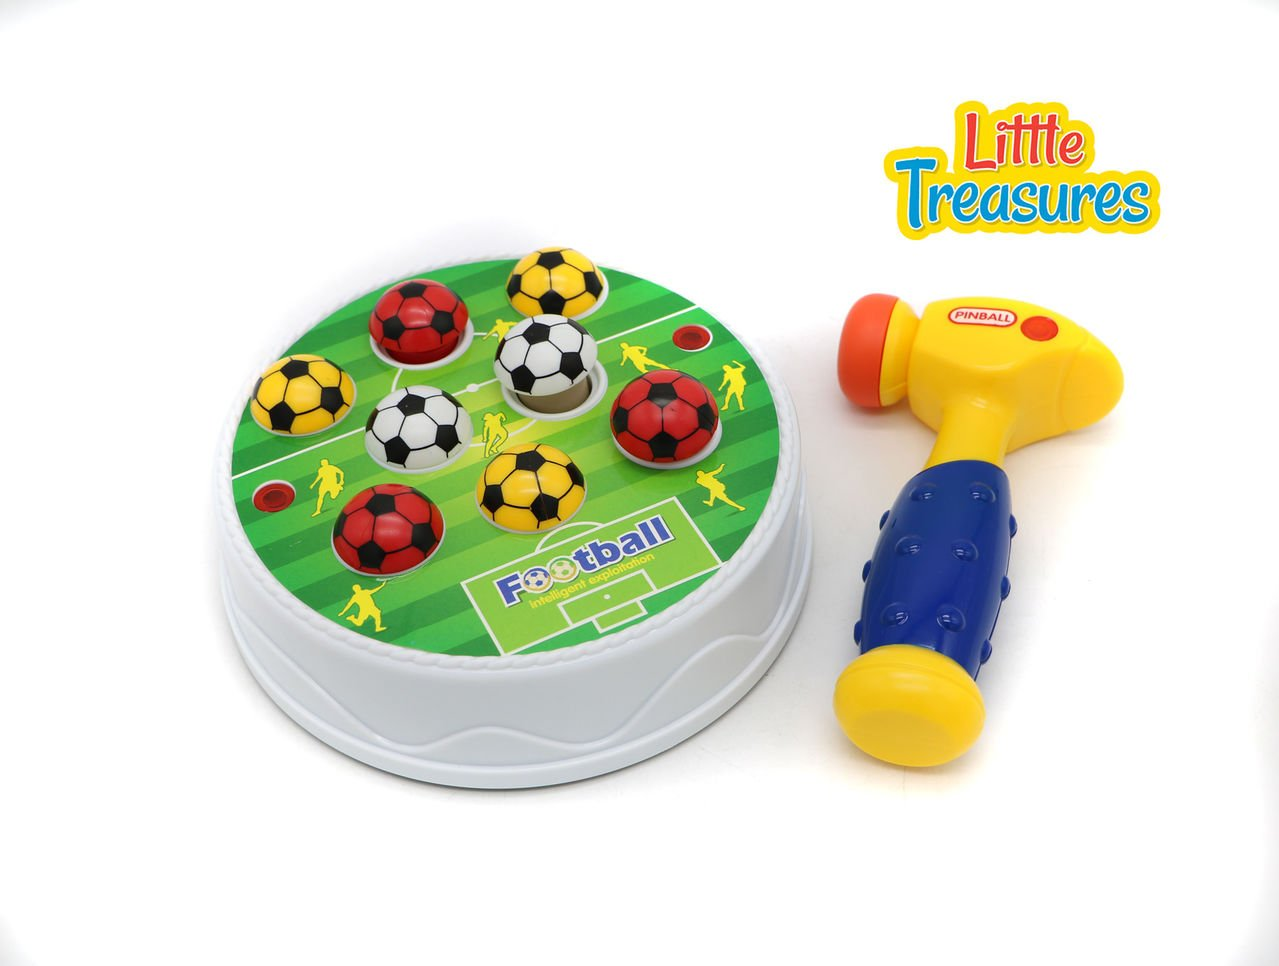 Little Treasures World of Soccer Pop up Whack Style Game Play with a Toy Pinball Hammer